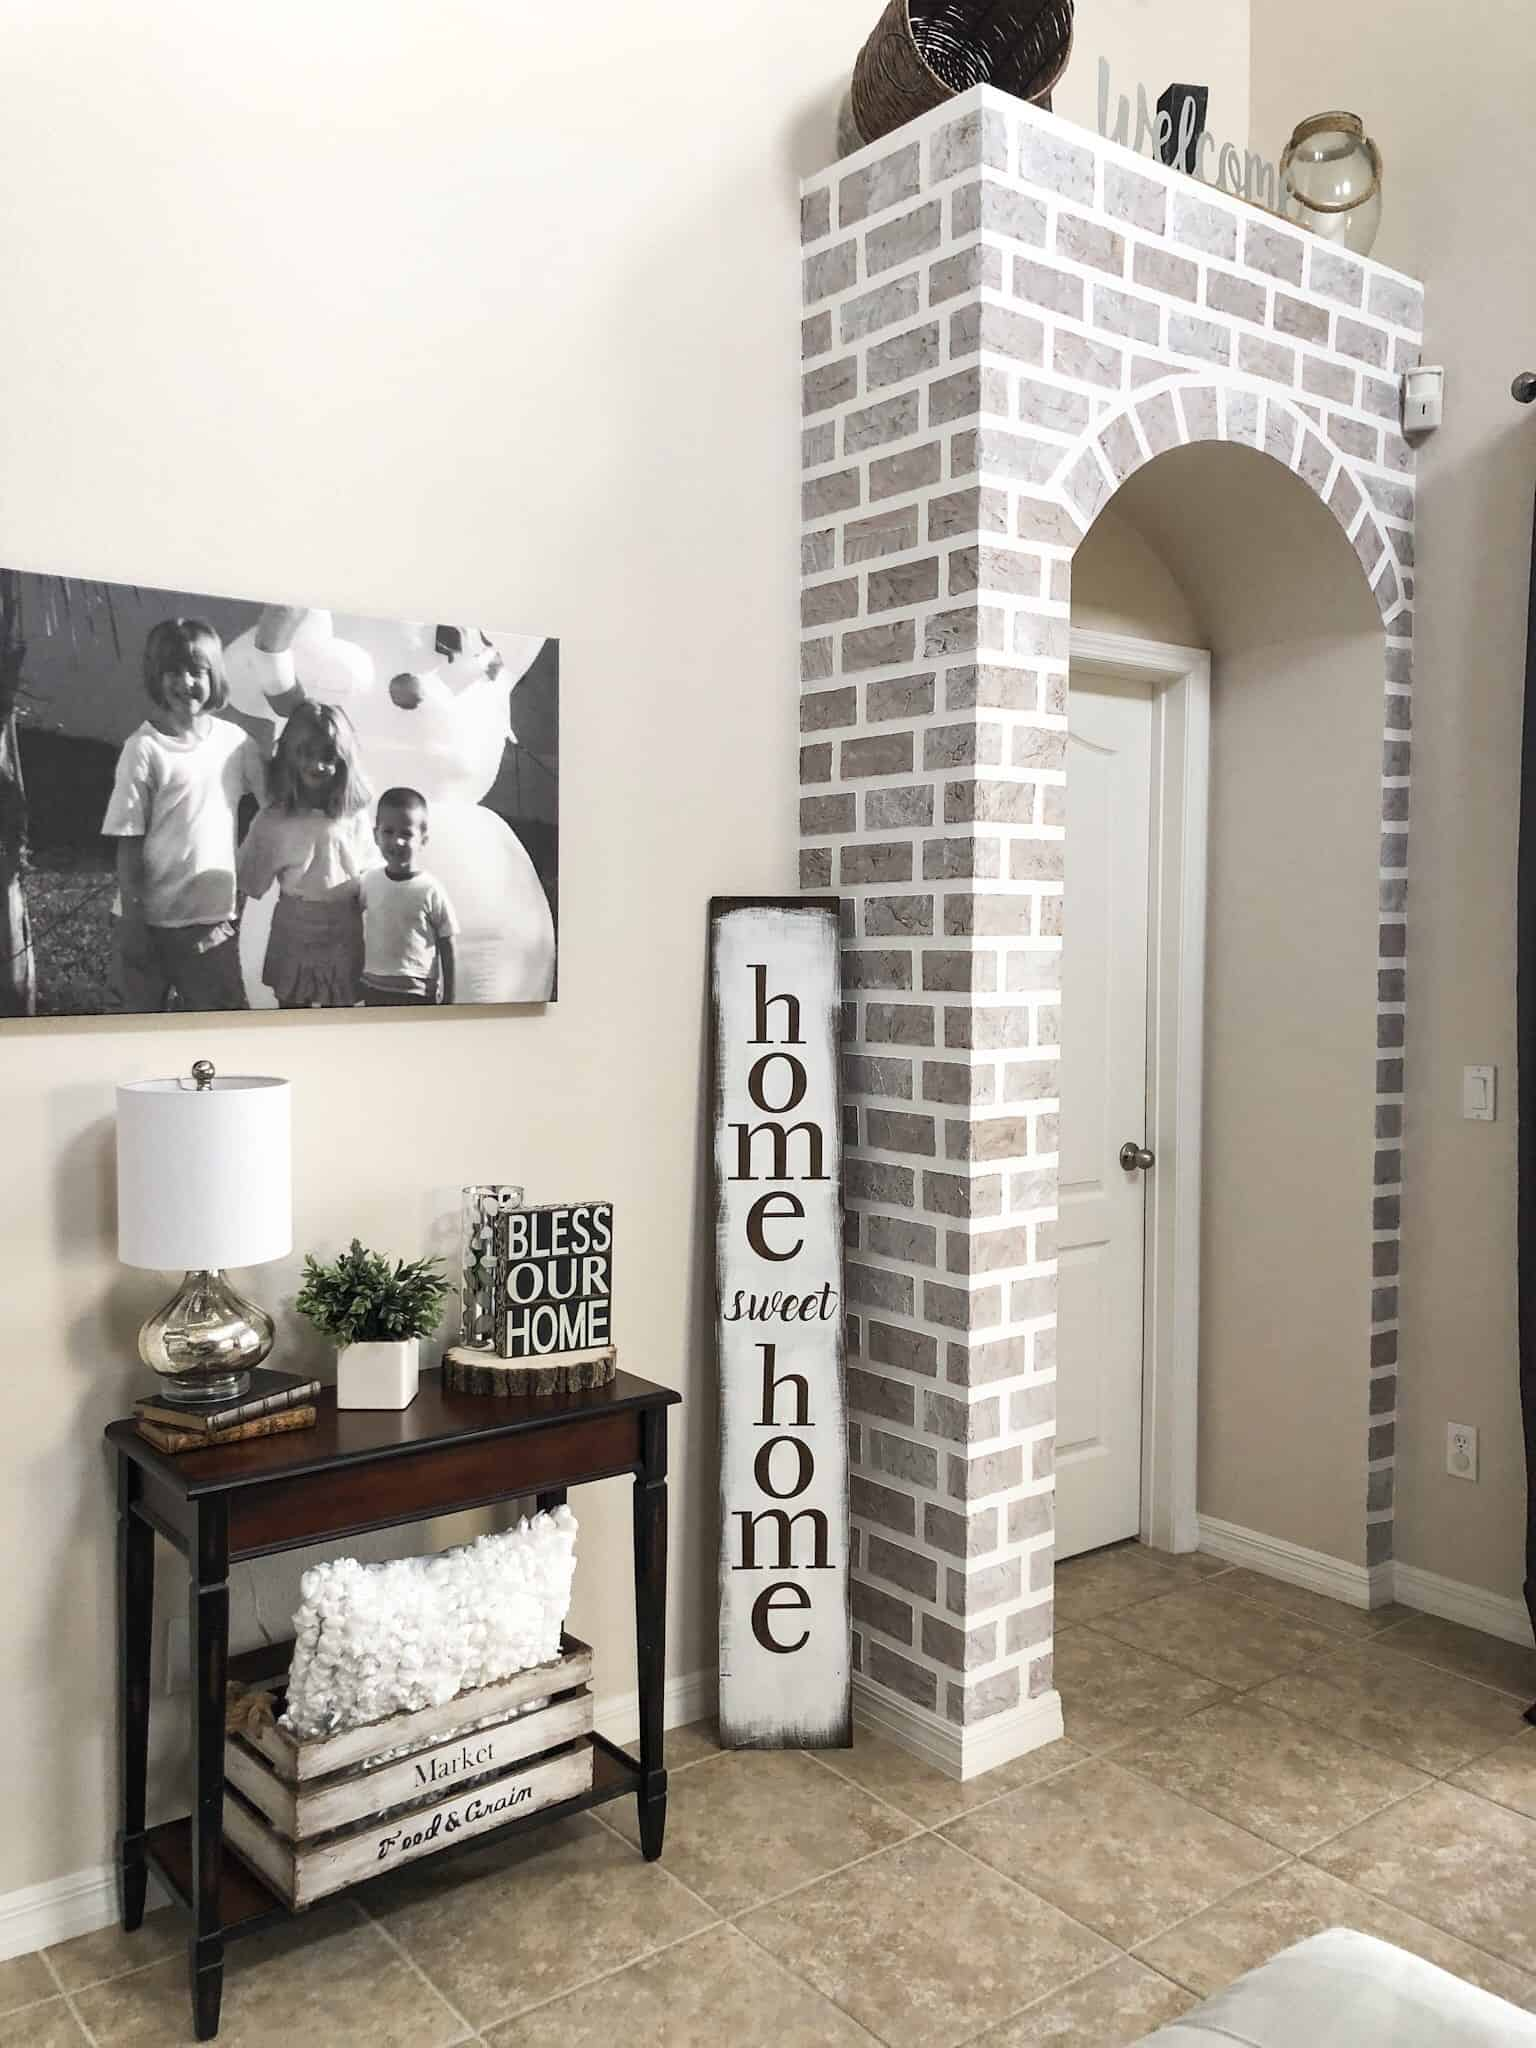 How to create a faux accent brick wall